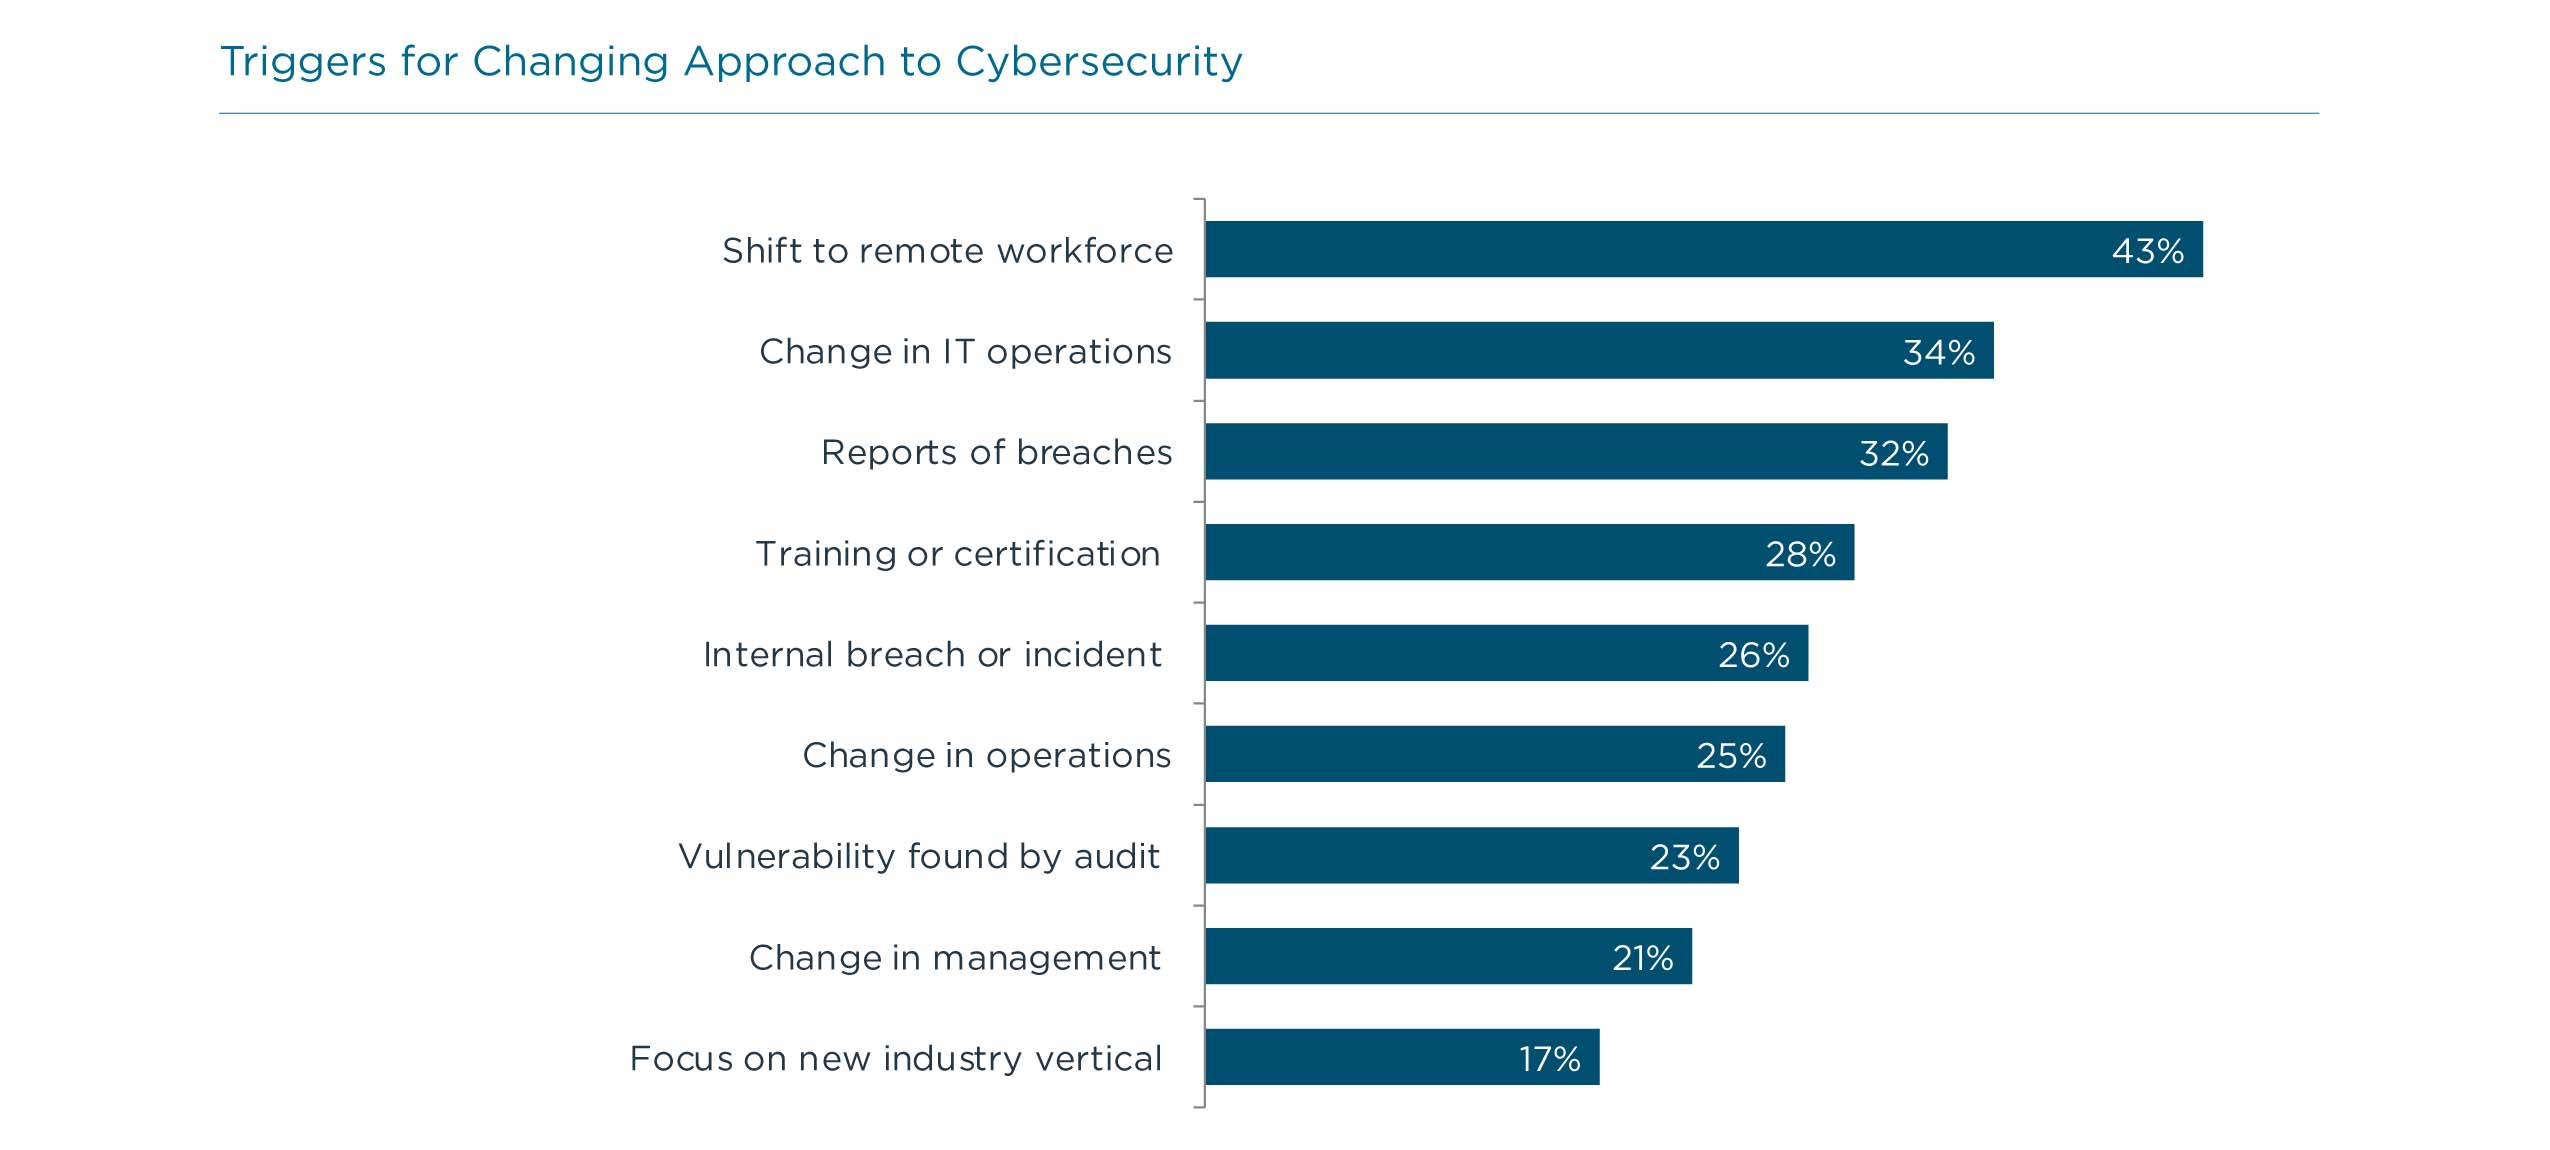 Triggers for Changing Approach to Cybersecurity